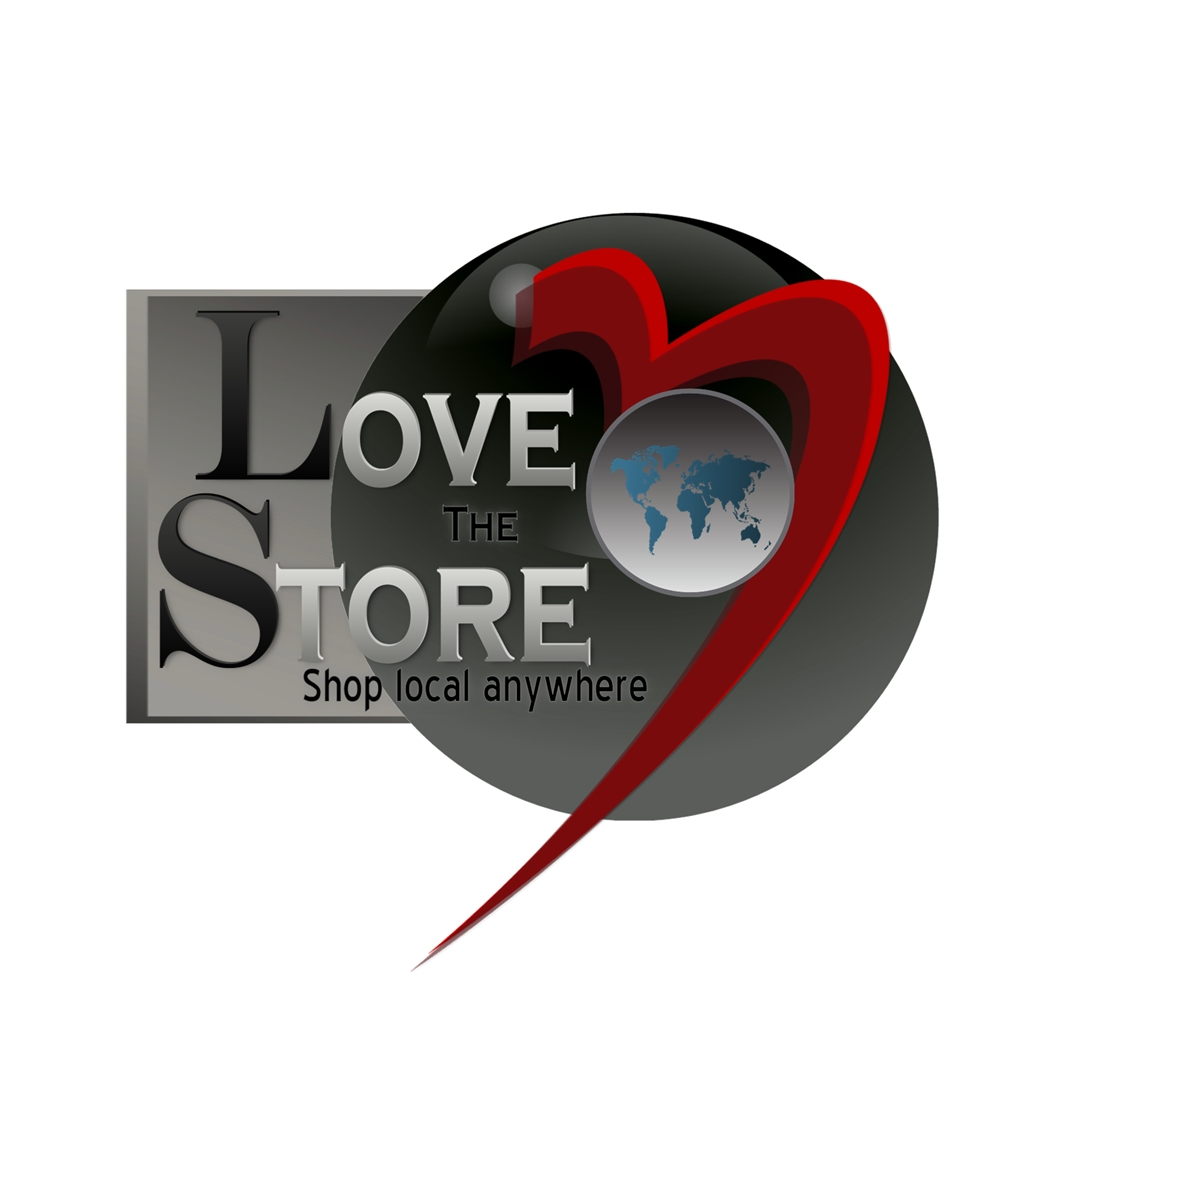 Logo Design by Chris Frederickson - Entry No. 12 in the Logo Design Contest Logo for online retail aggregator website.